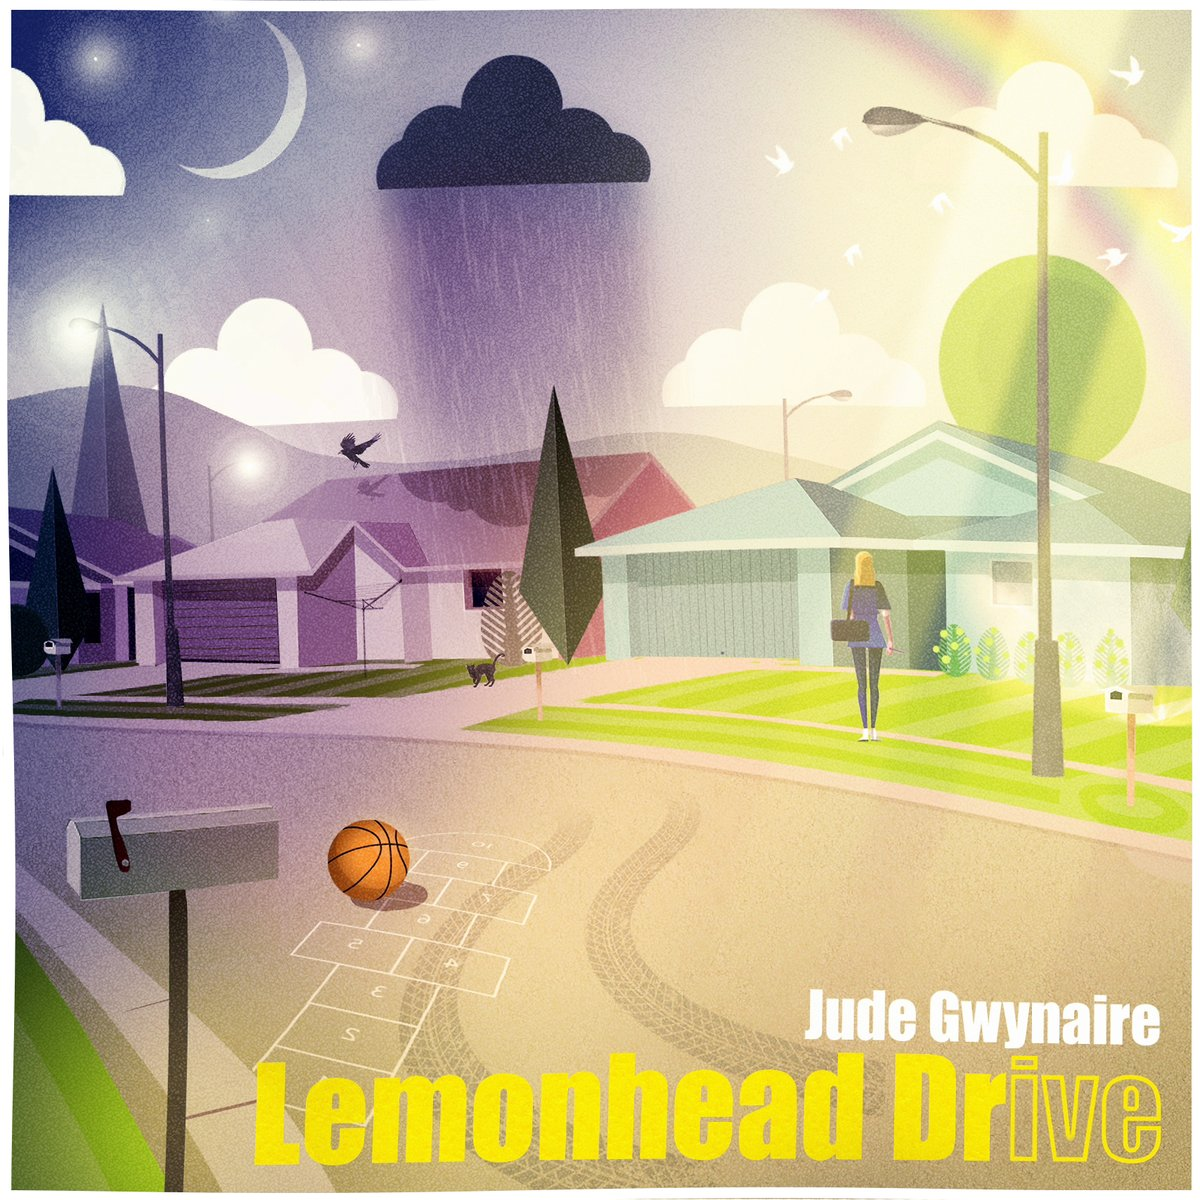 Here's a review of my 27 track album 'Lemonhead Drive' by @skopemag 🎧🎸🎹🍋🌄   #music #NewMusic2021 #conceptalbum #electronica #rockmusic #ambientmusic #USA #soundscapes #guitar #musician #composer #musicislife #musicismagic